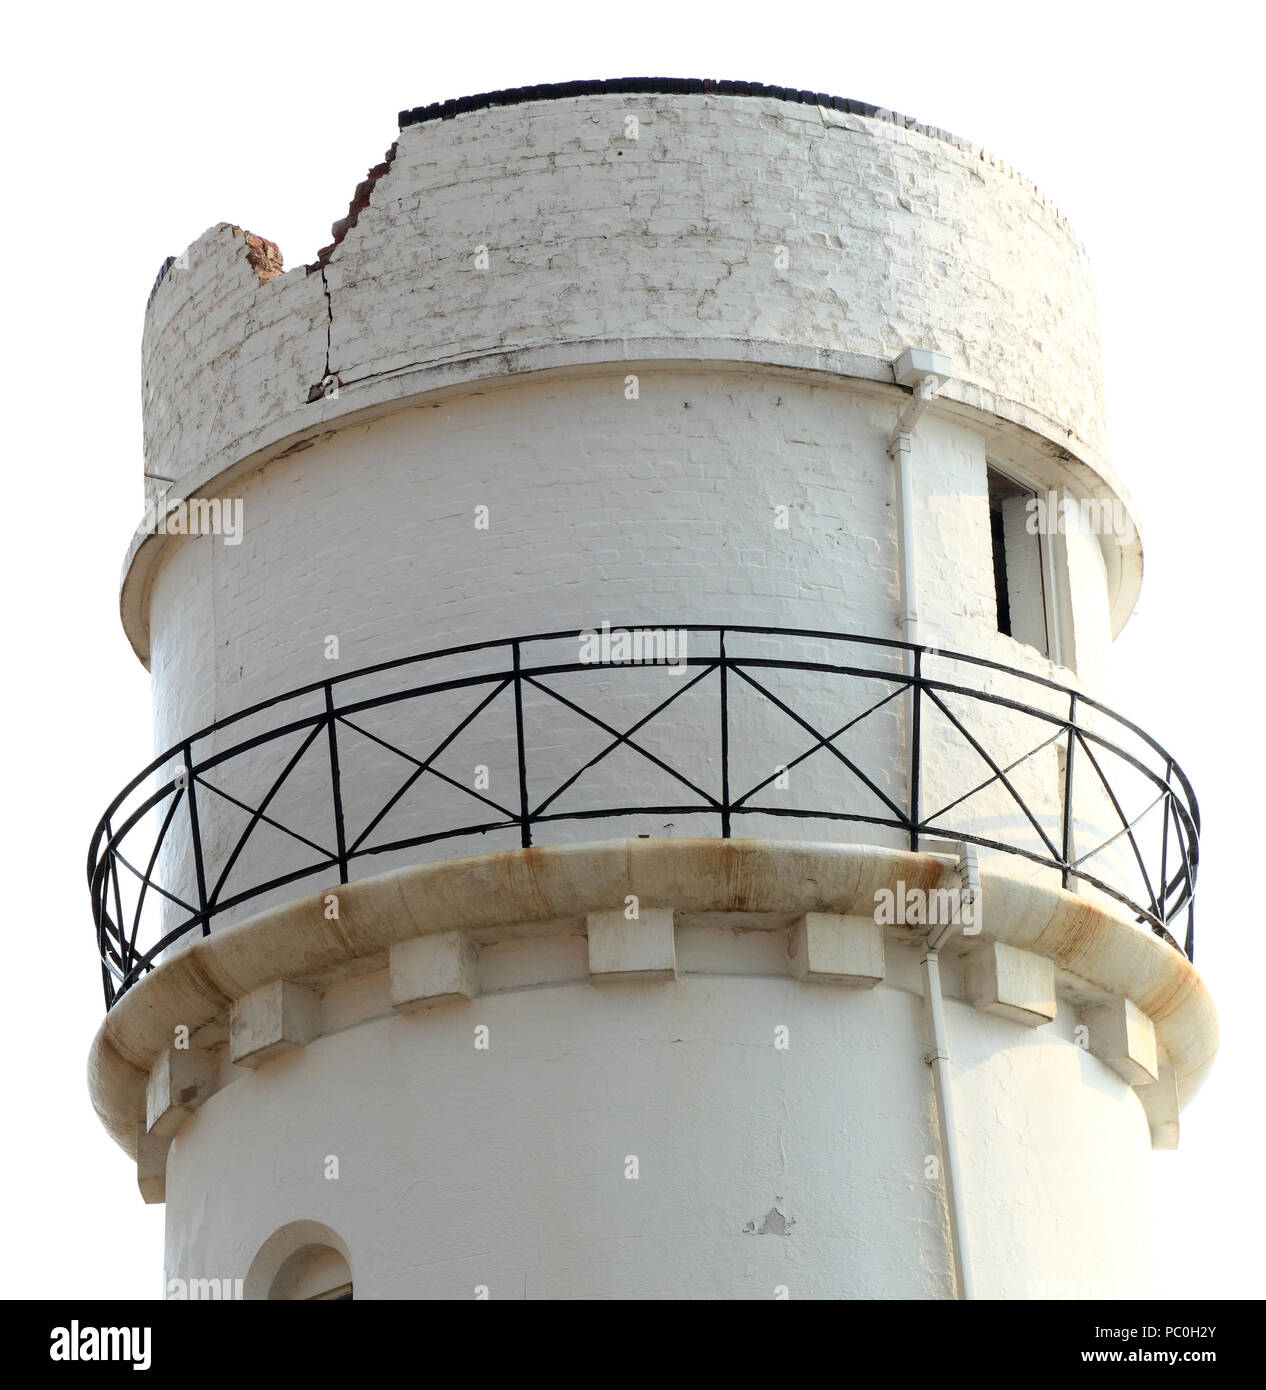 Hunstanton Lighthouse, struck by lightning, structural damage, top of tower - Stock Image